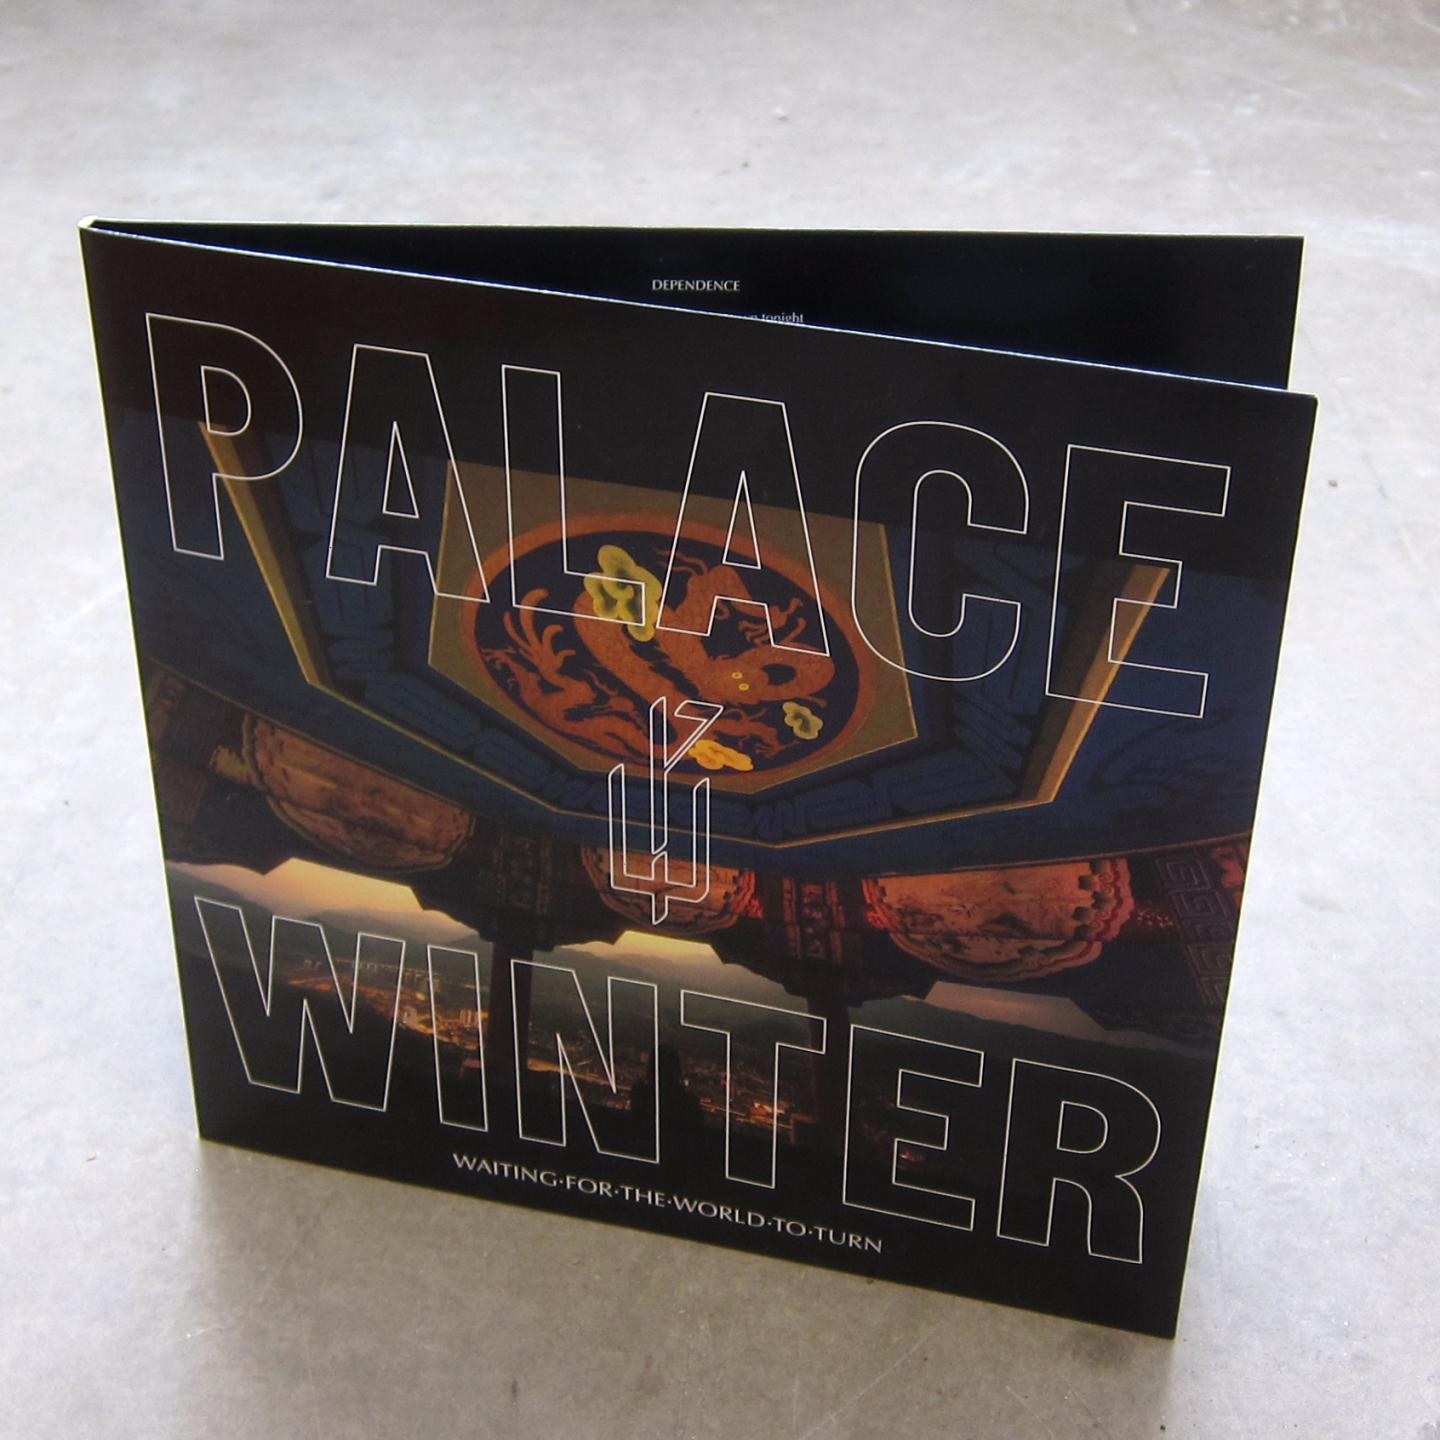 Palace Winter - Waiting for the World to Turn (vinyl front)